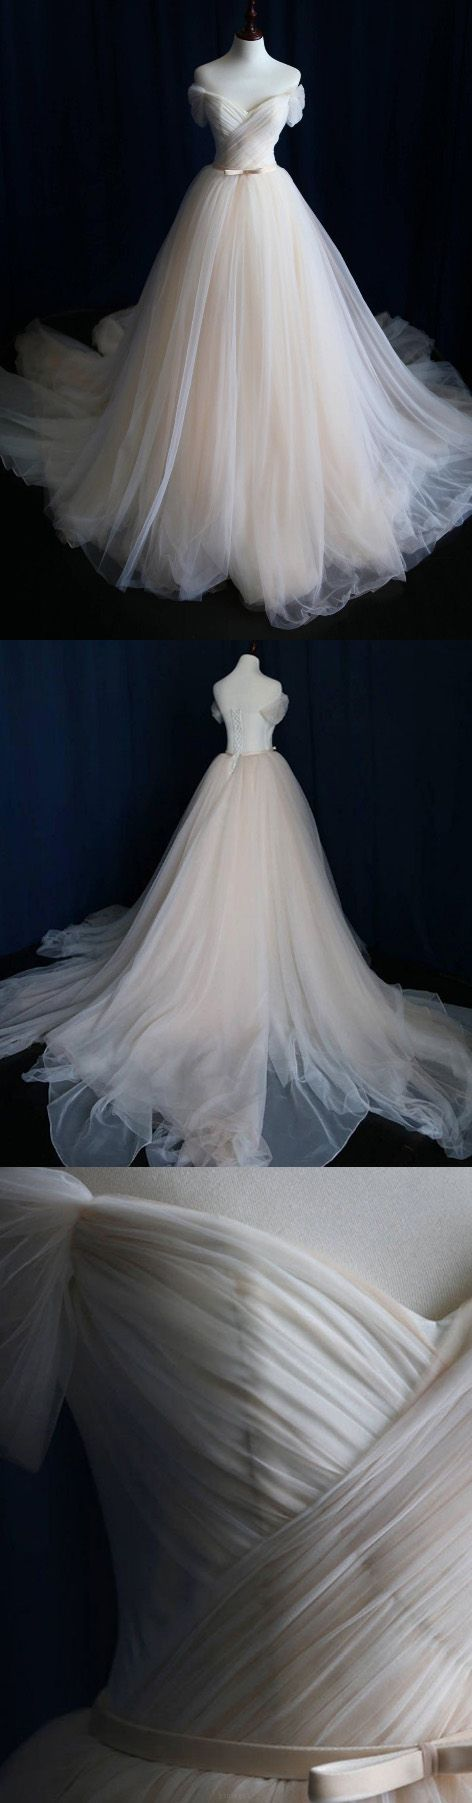 Hot sale sleeveless dresses long white wedding dresses with ruffles